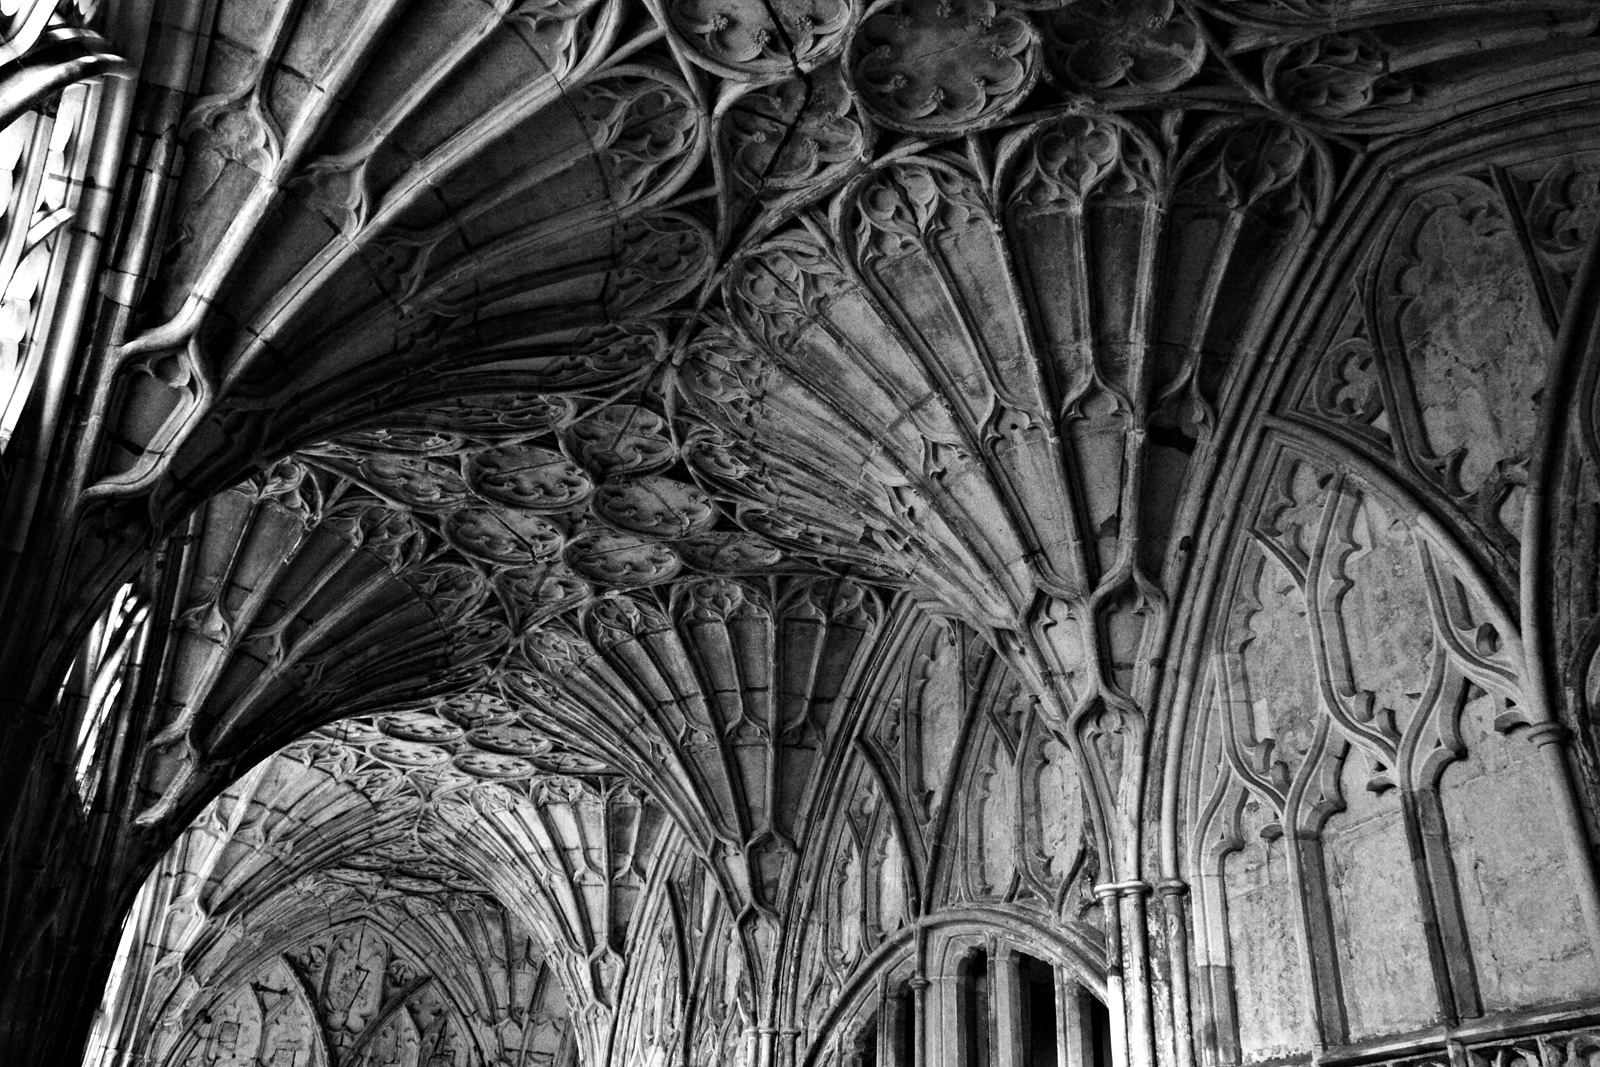 Gothica (Gloucester Cathedral)